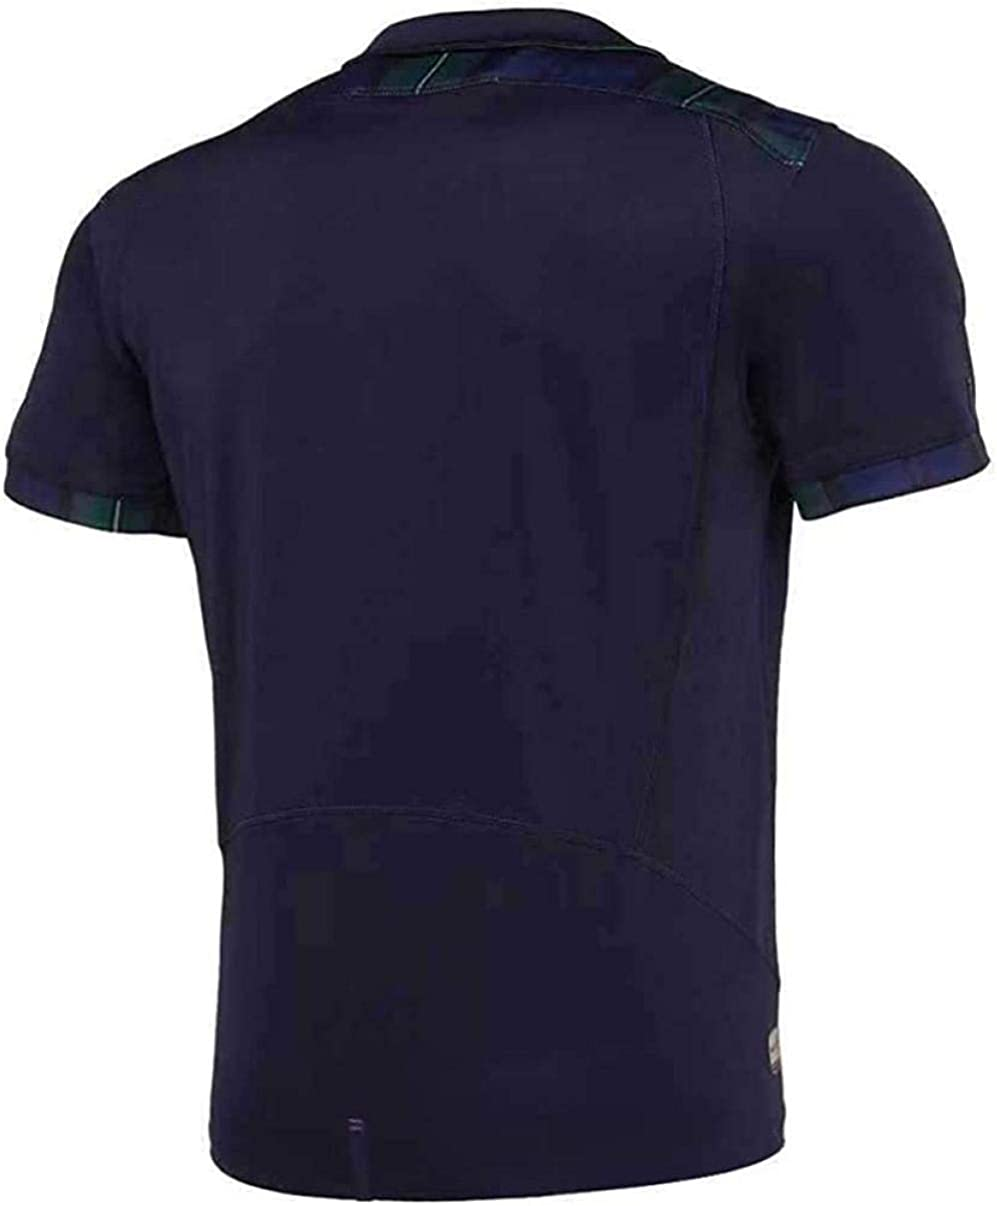 YTDHBLK Rugby Jersey World Cup Mens Rugby Shirt Rugby Fans T-Shirt Scotland/_S